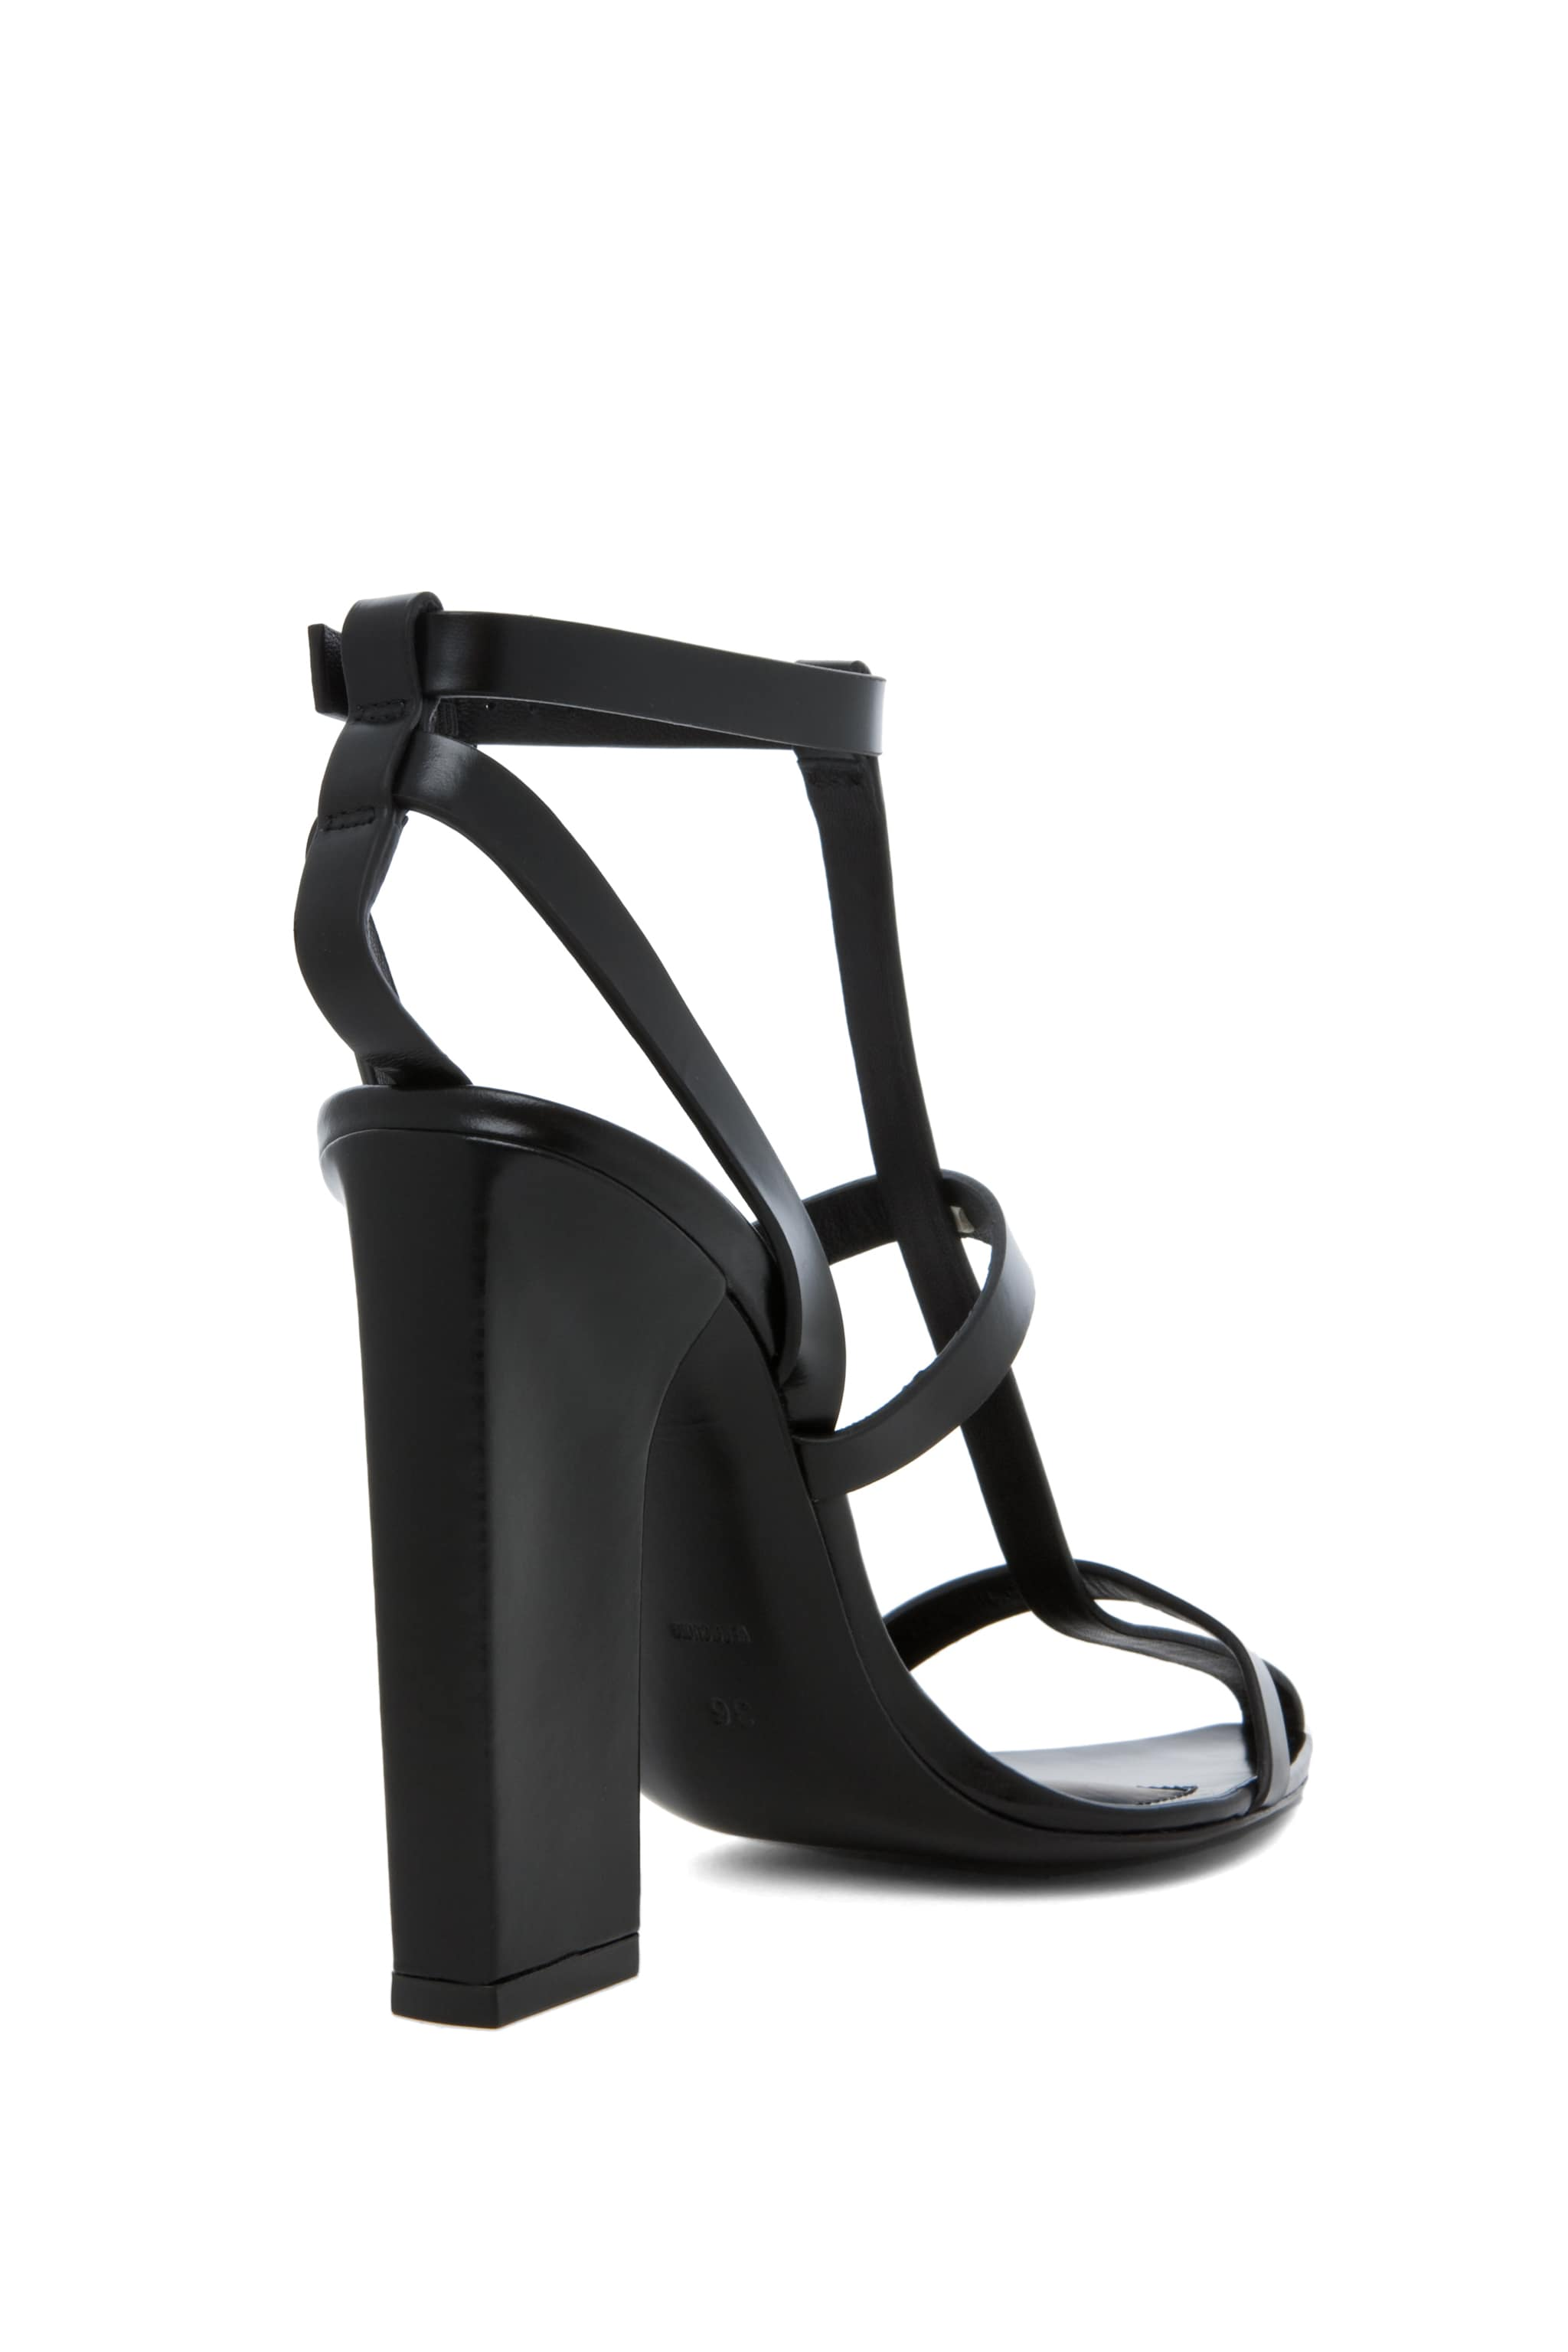 Image 7 of Alexander Wang Aline T Strap Sandal in Black